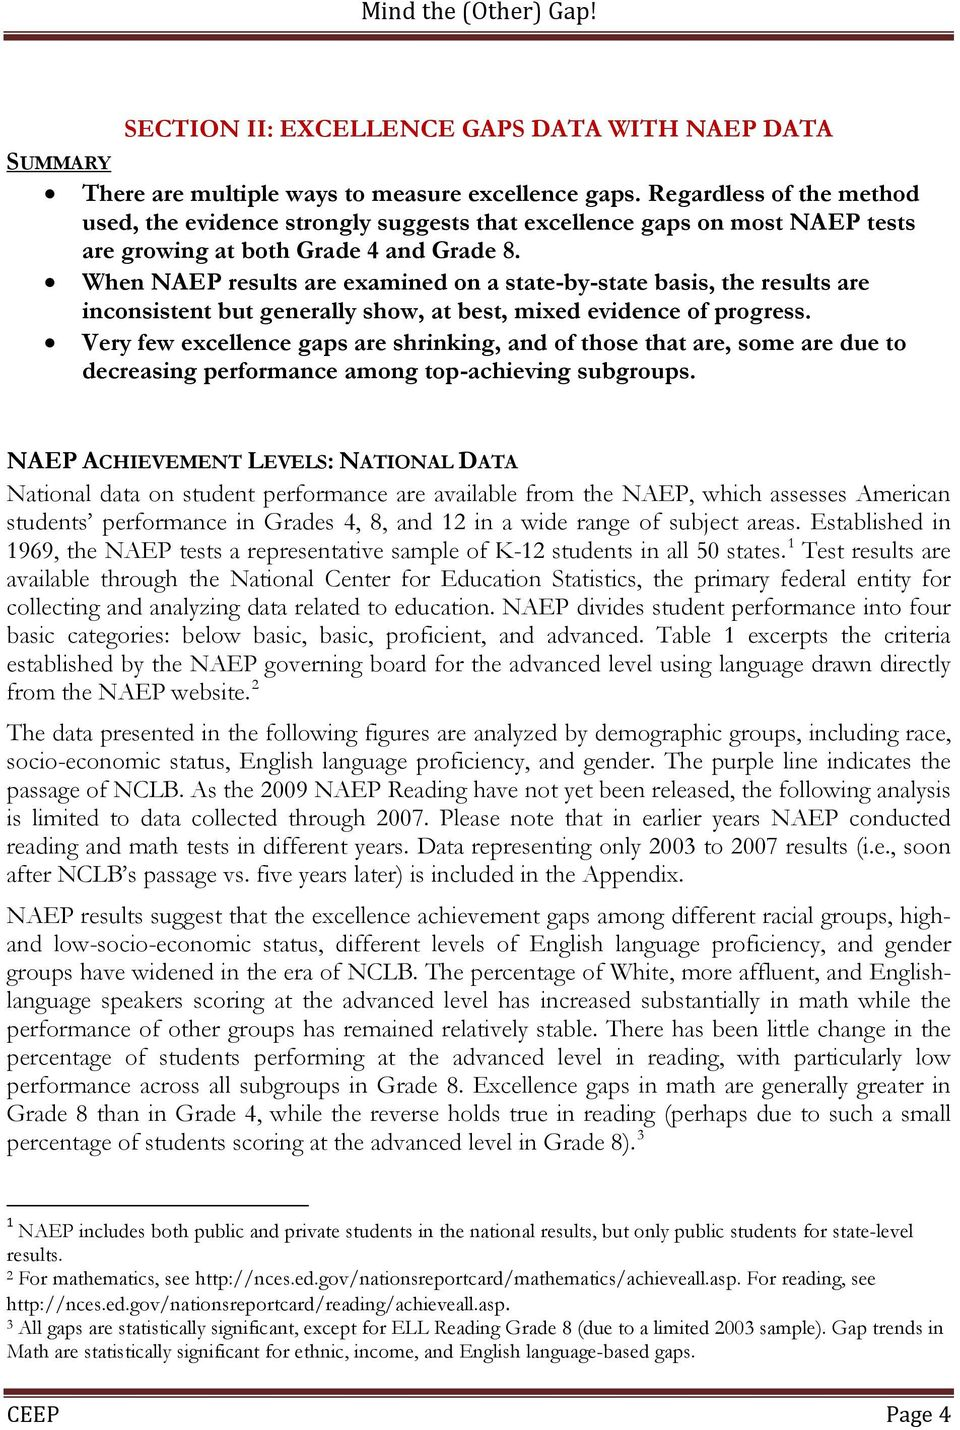 When NAEP results are examined on a state-by-state basis, the results are inconsistent but generally show, at best, mixed evidence of progress.